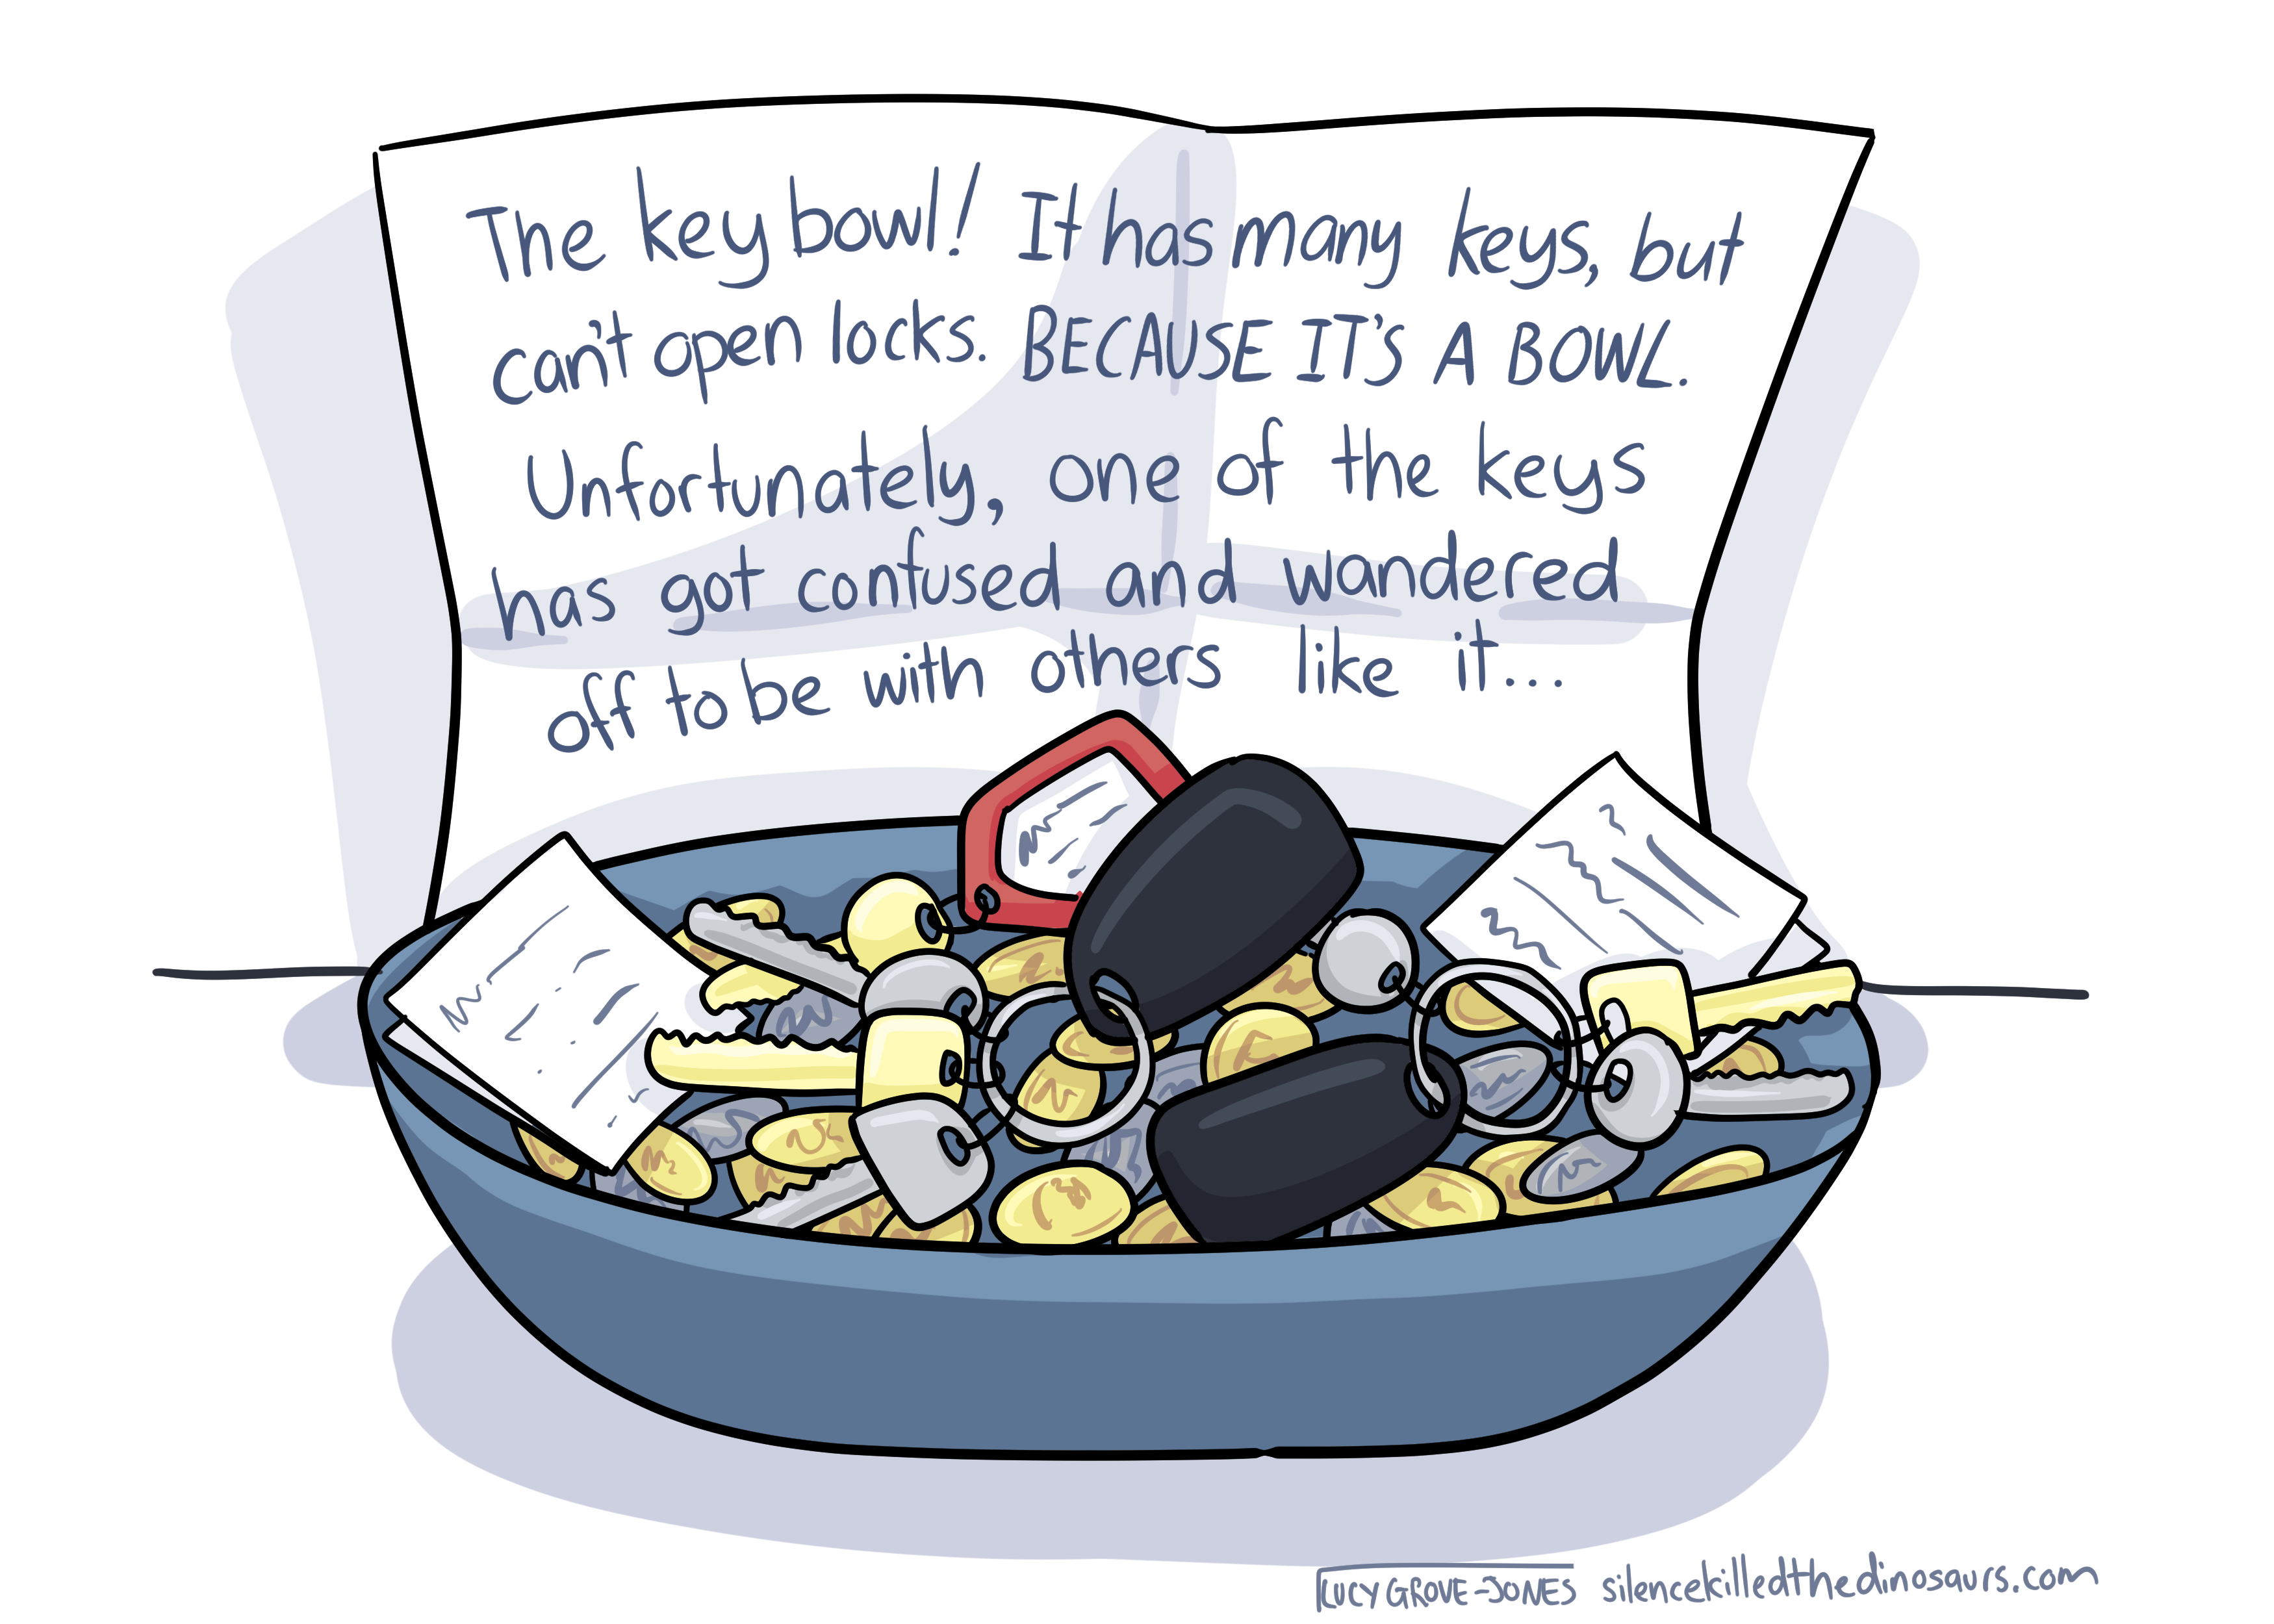 A bowl full of keys and other pocket odds and ends. There is a note that reads: 'The key bowl! It has many keys, but can't open locks. BECAUSE IT'S A BOWL. Unfortunately, one of the keys has got confused and wandered off to be with others like it...'